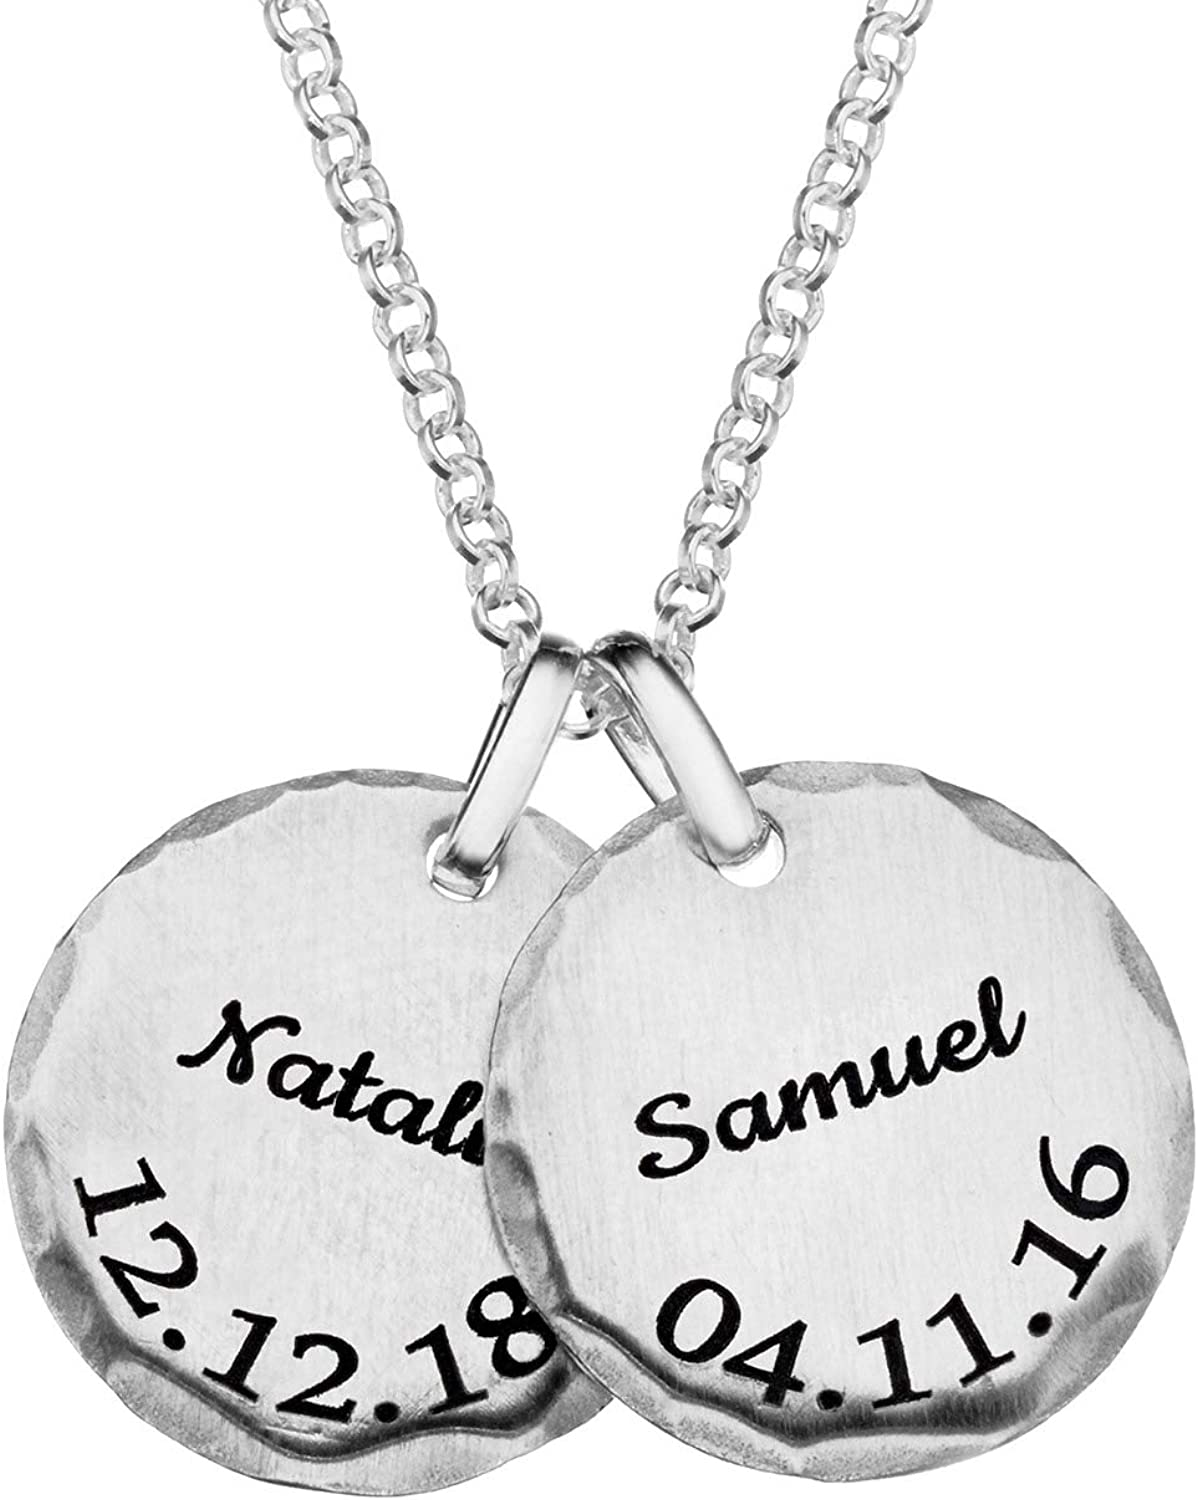 MyNameNecklace Personalized San Francisco Mall Custom Hammered i Edge Disc Necklace Quantity limited